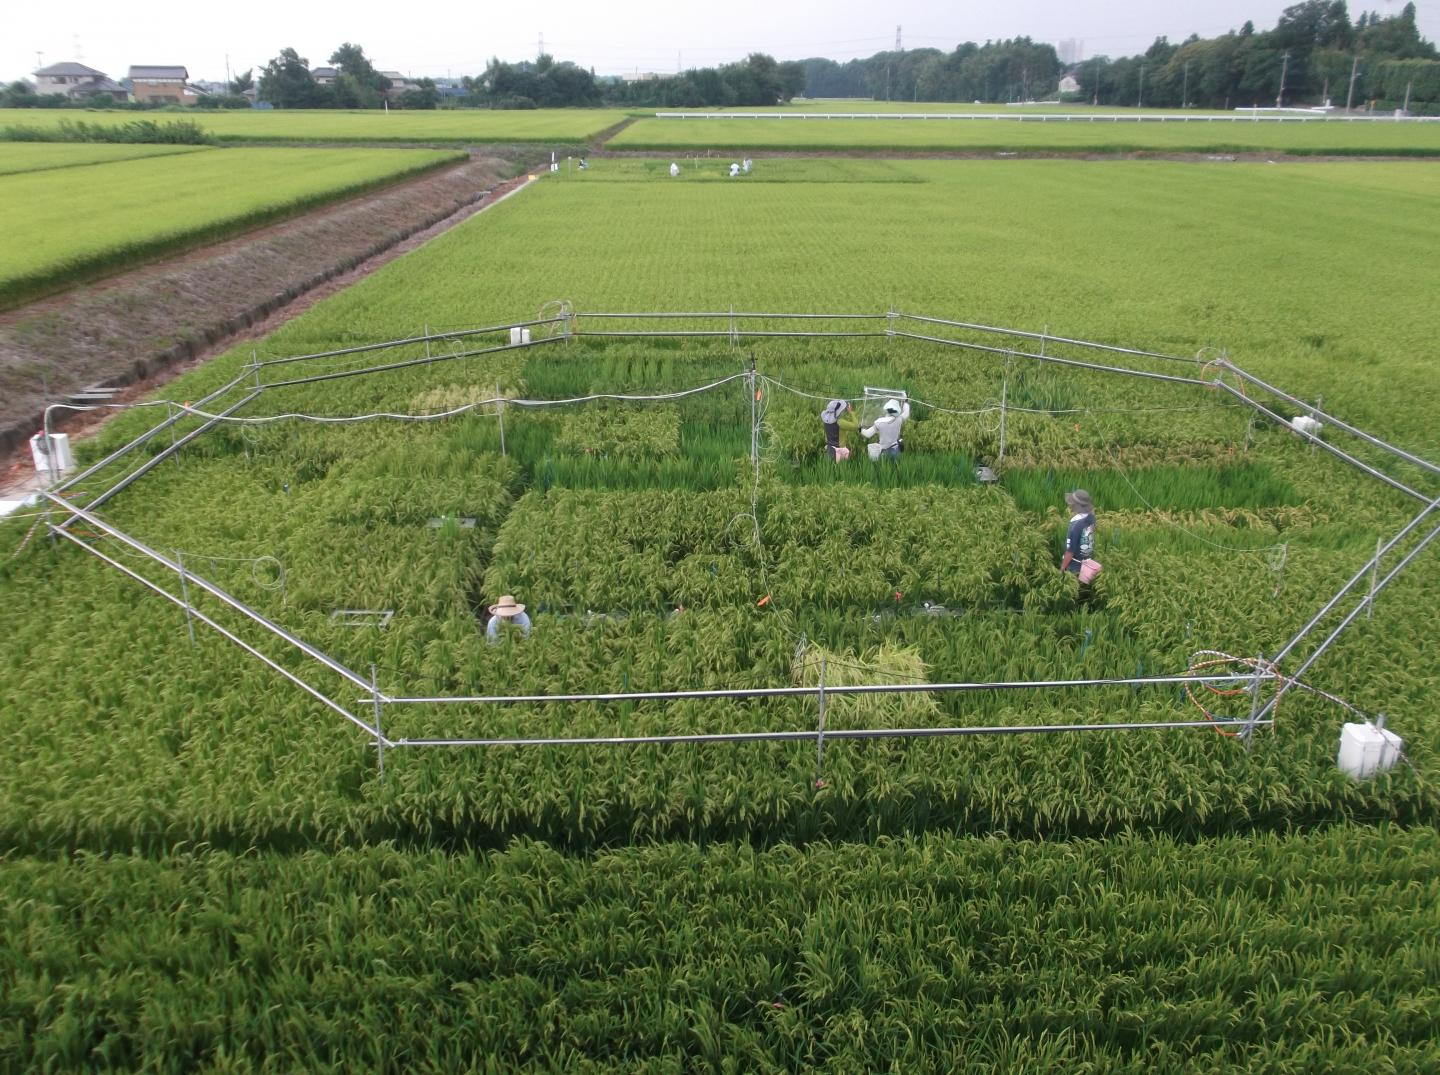 An experimental rice field near Tsukuba, Japan, testing the effects of increased carbon dioxide exposure. Toshihiro Hasegawa/National Agriculture and Food Research Organization of Japan